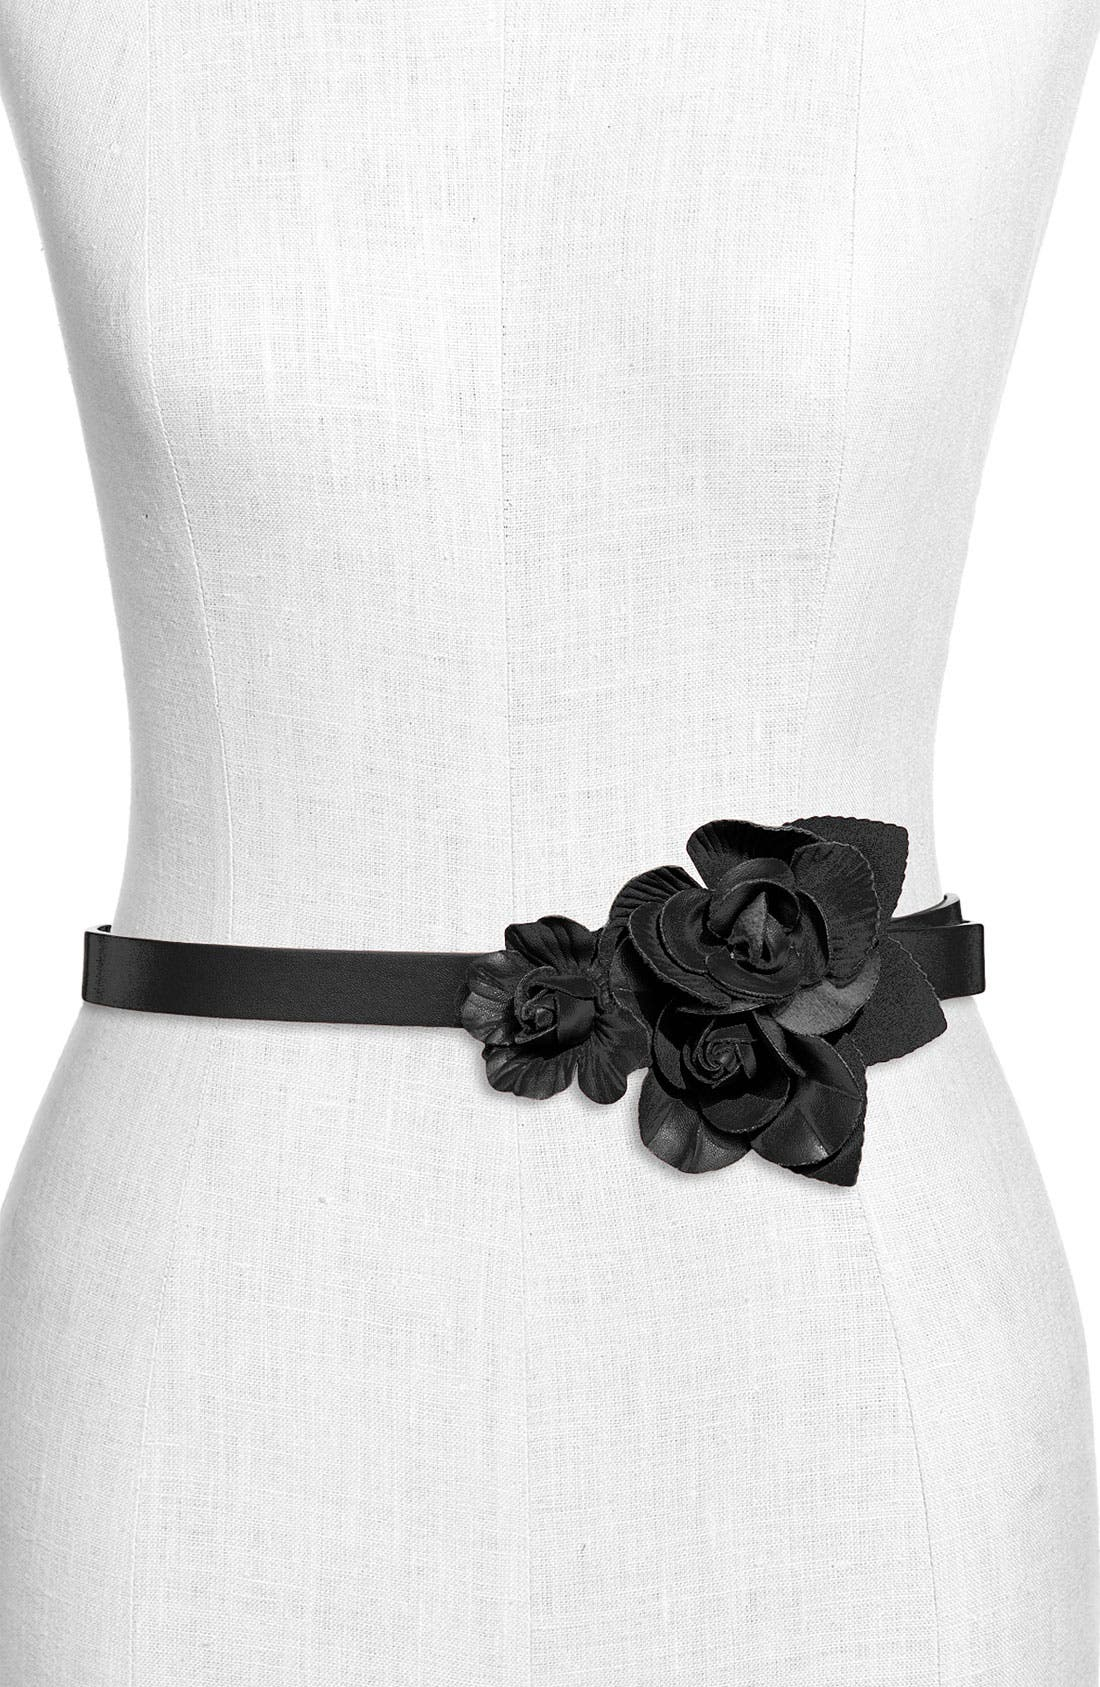 Alternate Image 1 Selected - Tarnish 'Flower' Faux Leather Belt